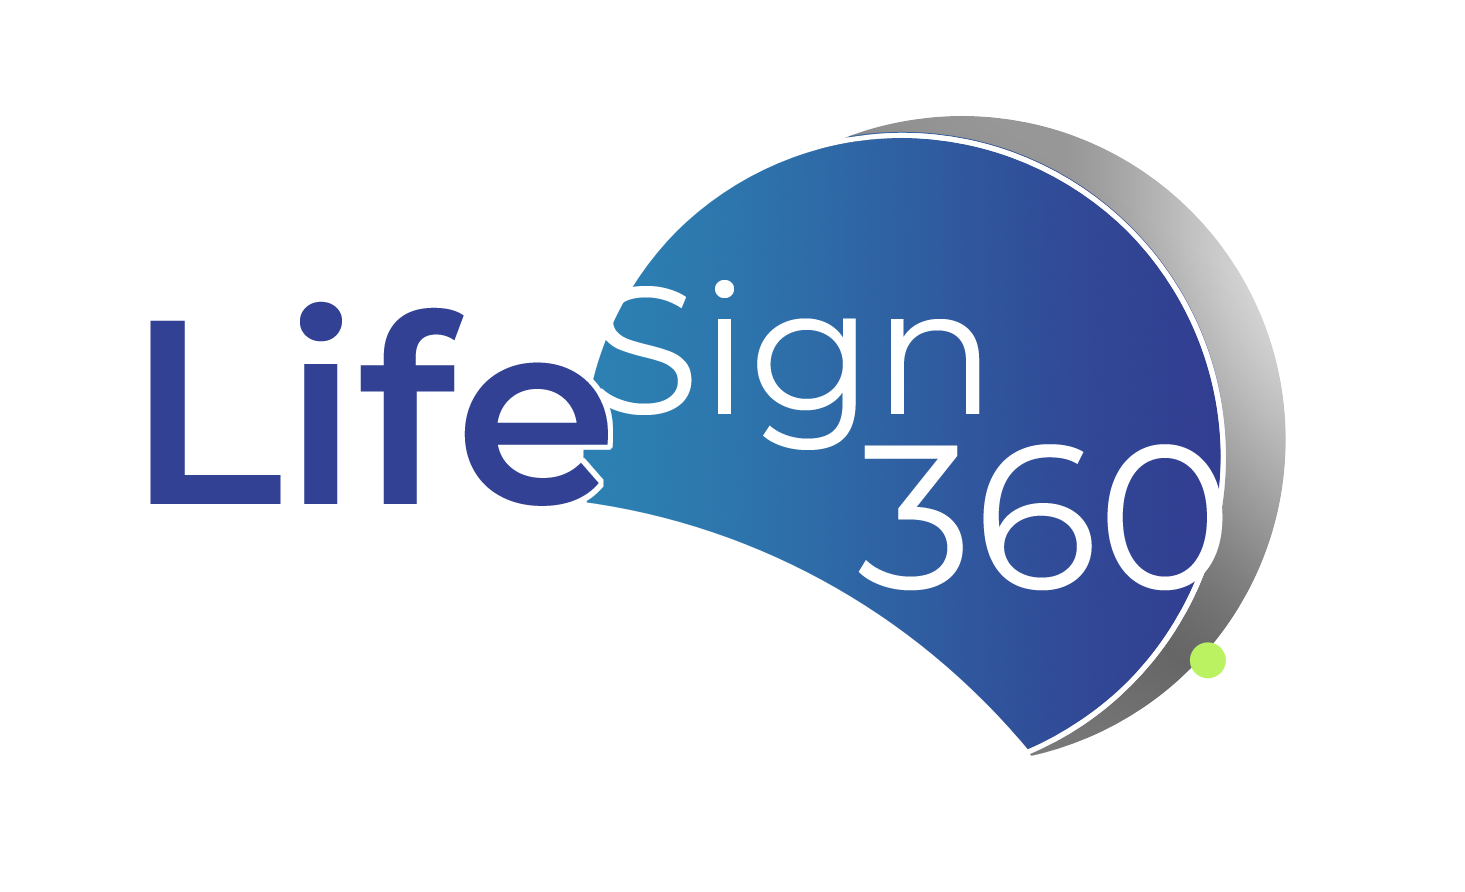 Astro Vision - LifeSign 360 | Parihara Business Astrology